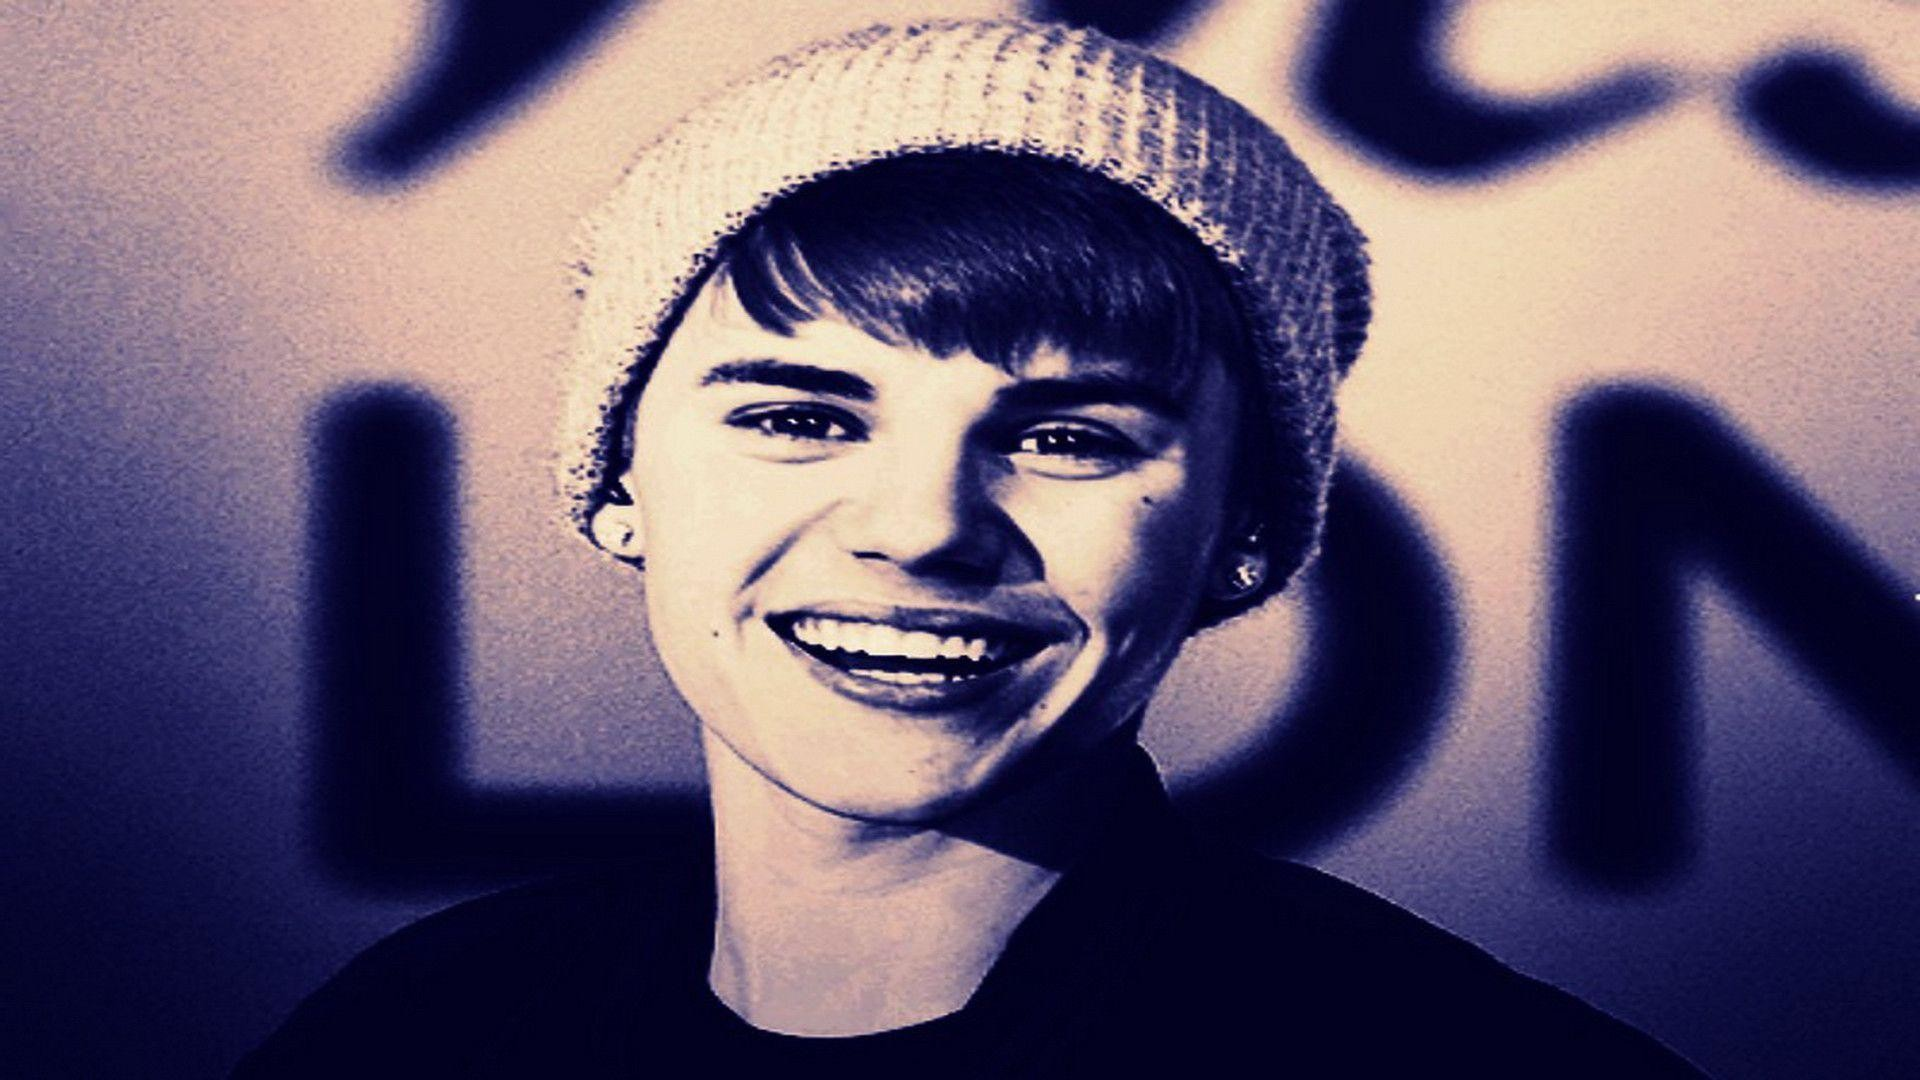 1920x1080 Justin Bieber Wallpapers, -justin-bieber-28043564-800-600, HD